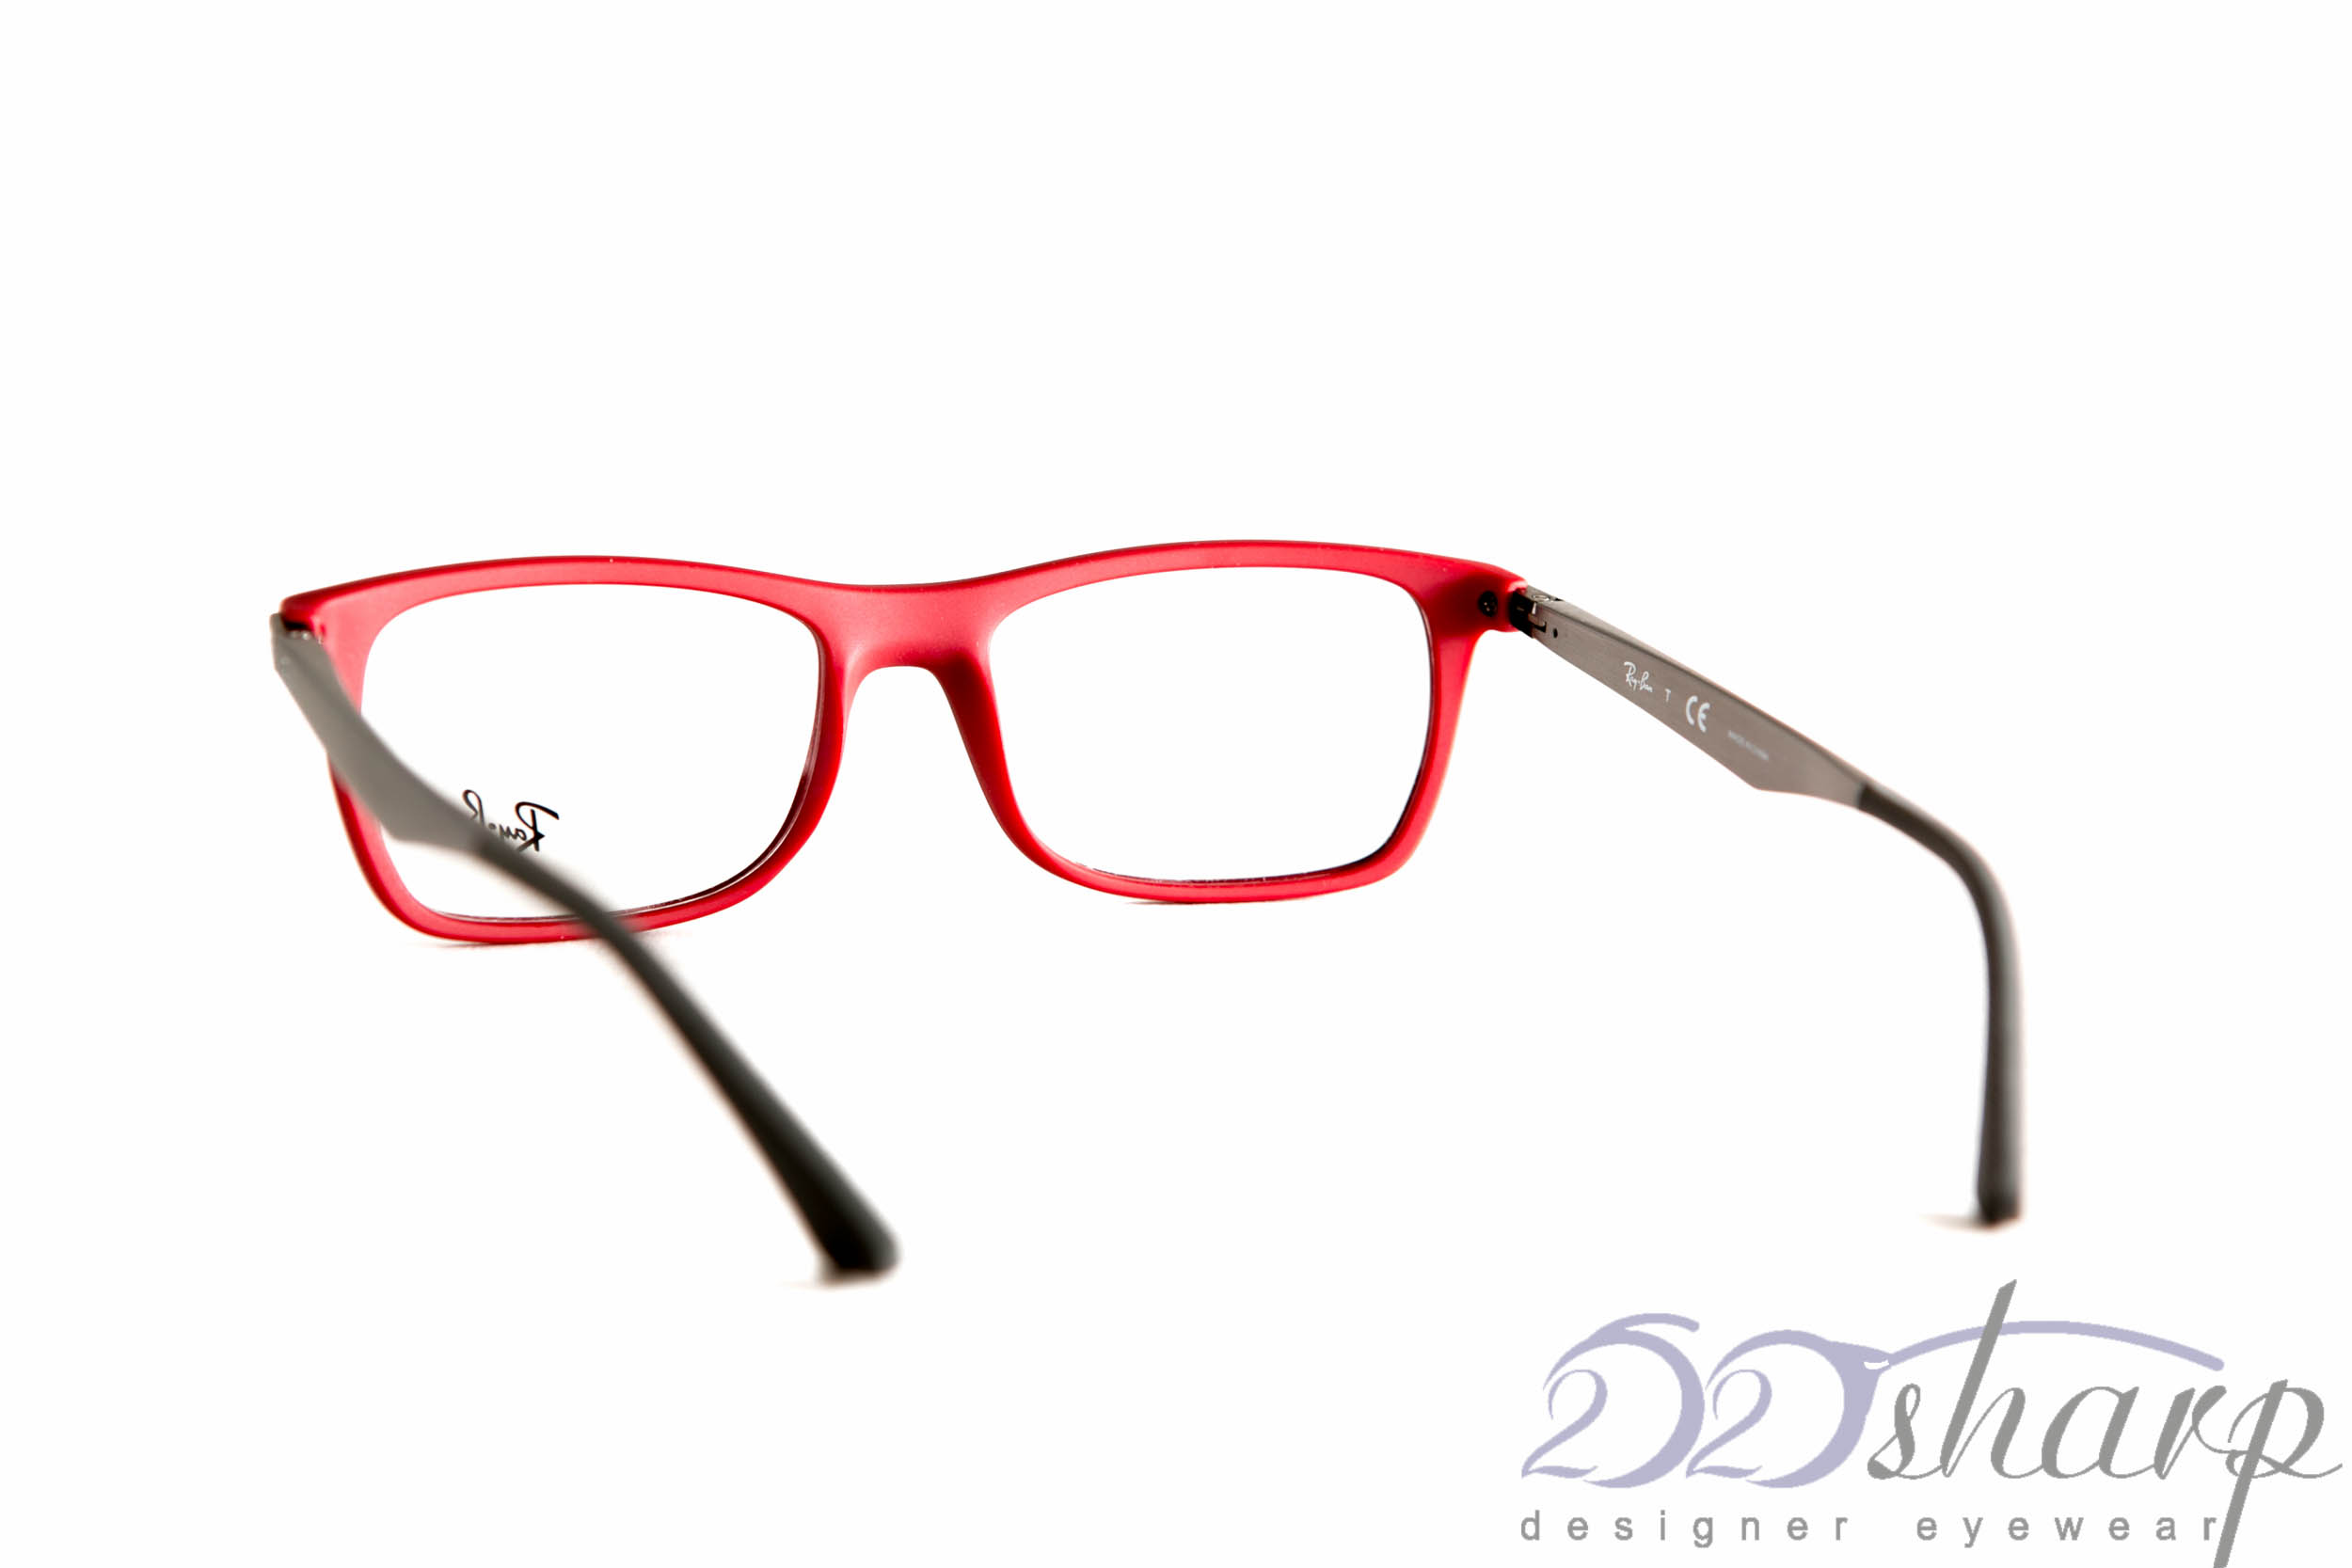 078af9518d We can make high quality lenses for your frames.